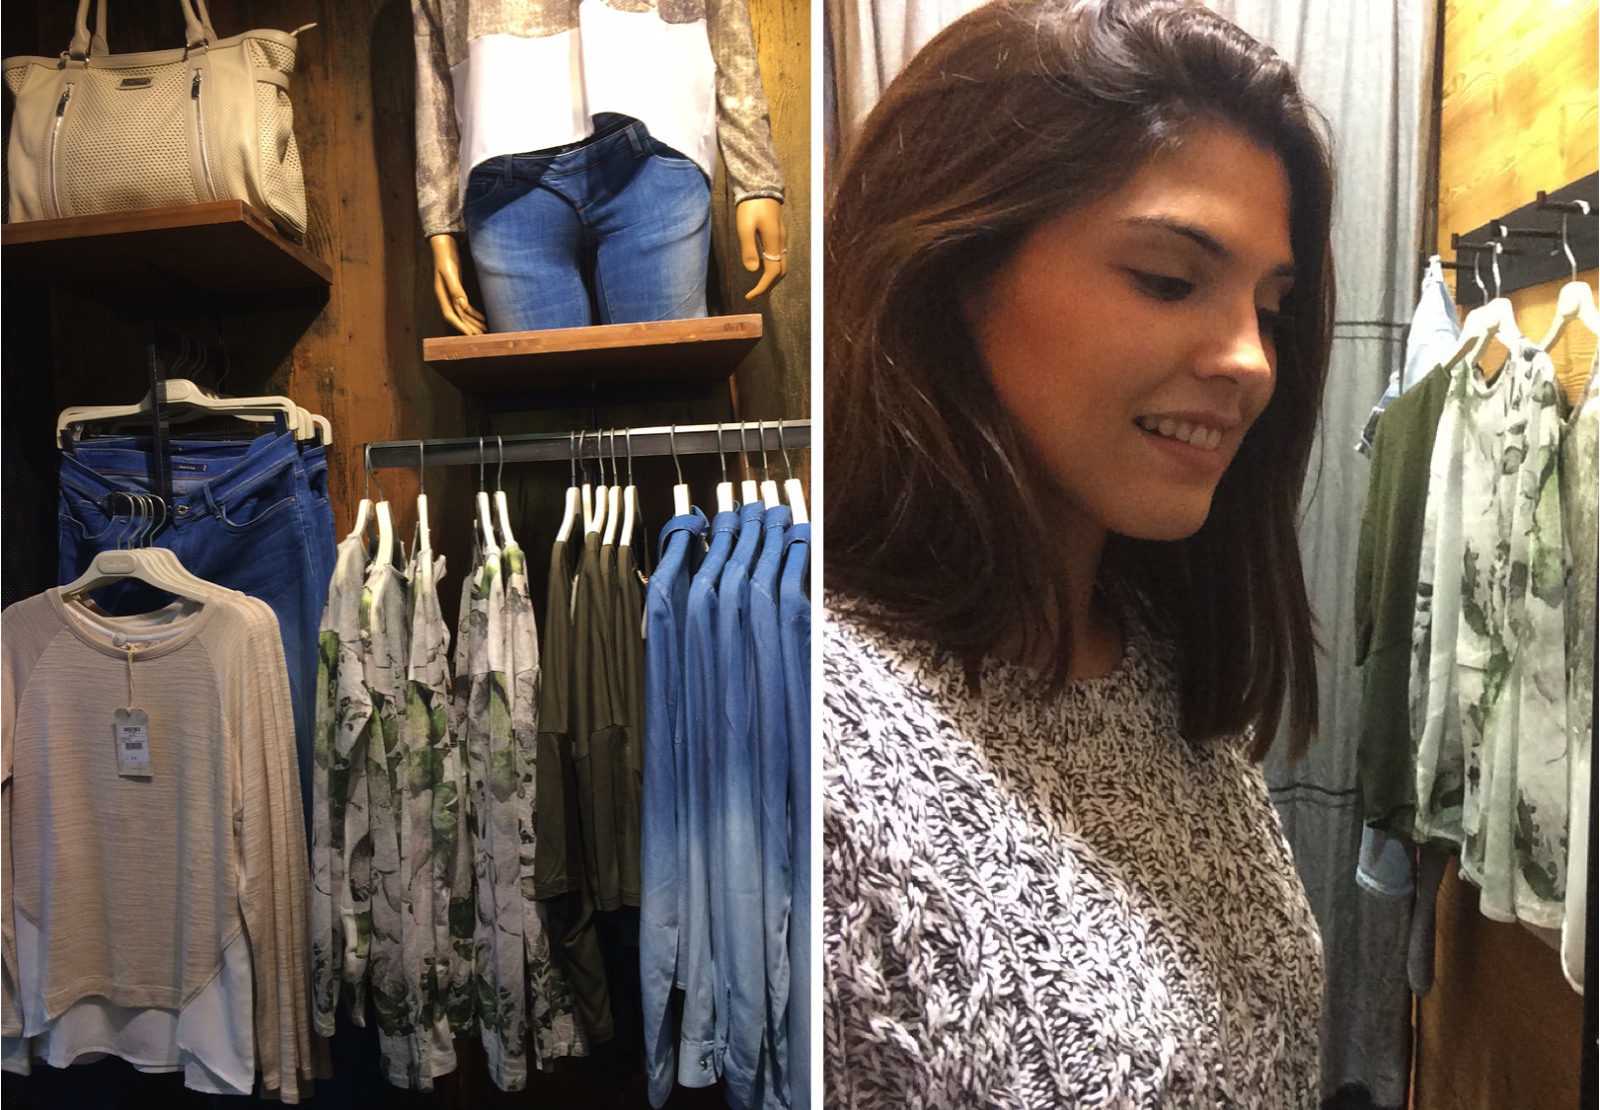 Marta Carvalho, from Sabonete Cor de Rosa Blog, has visited our store and felt in love with our clothes!